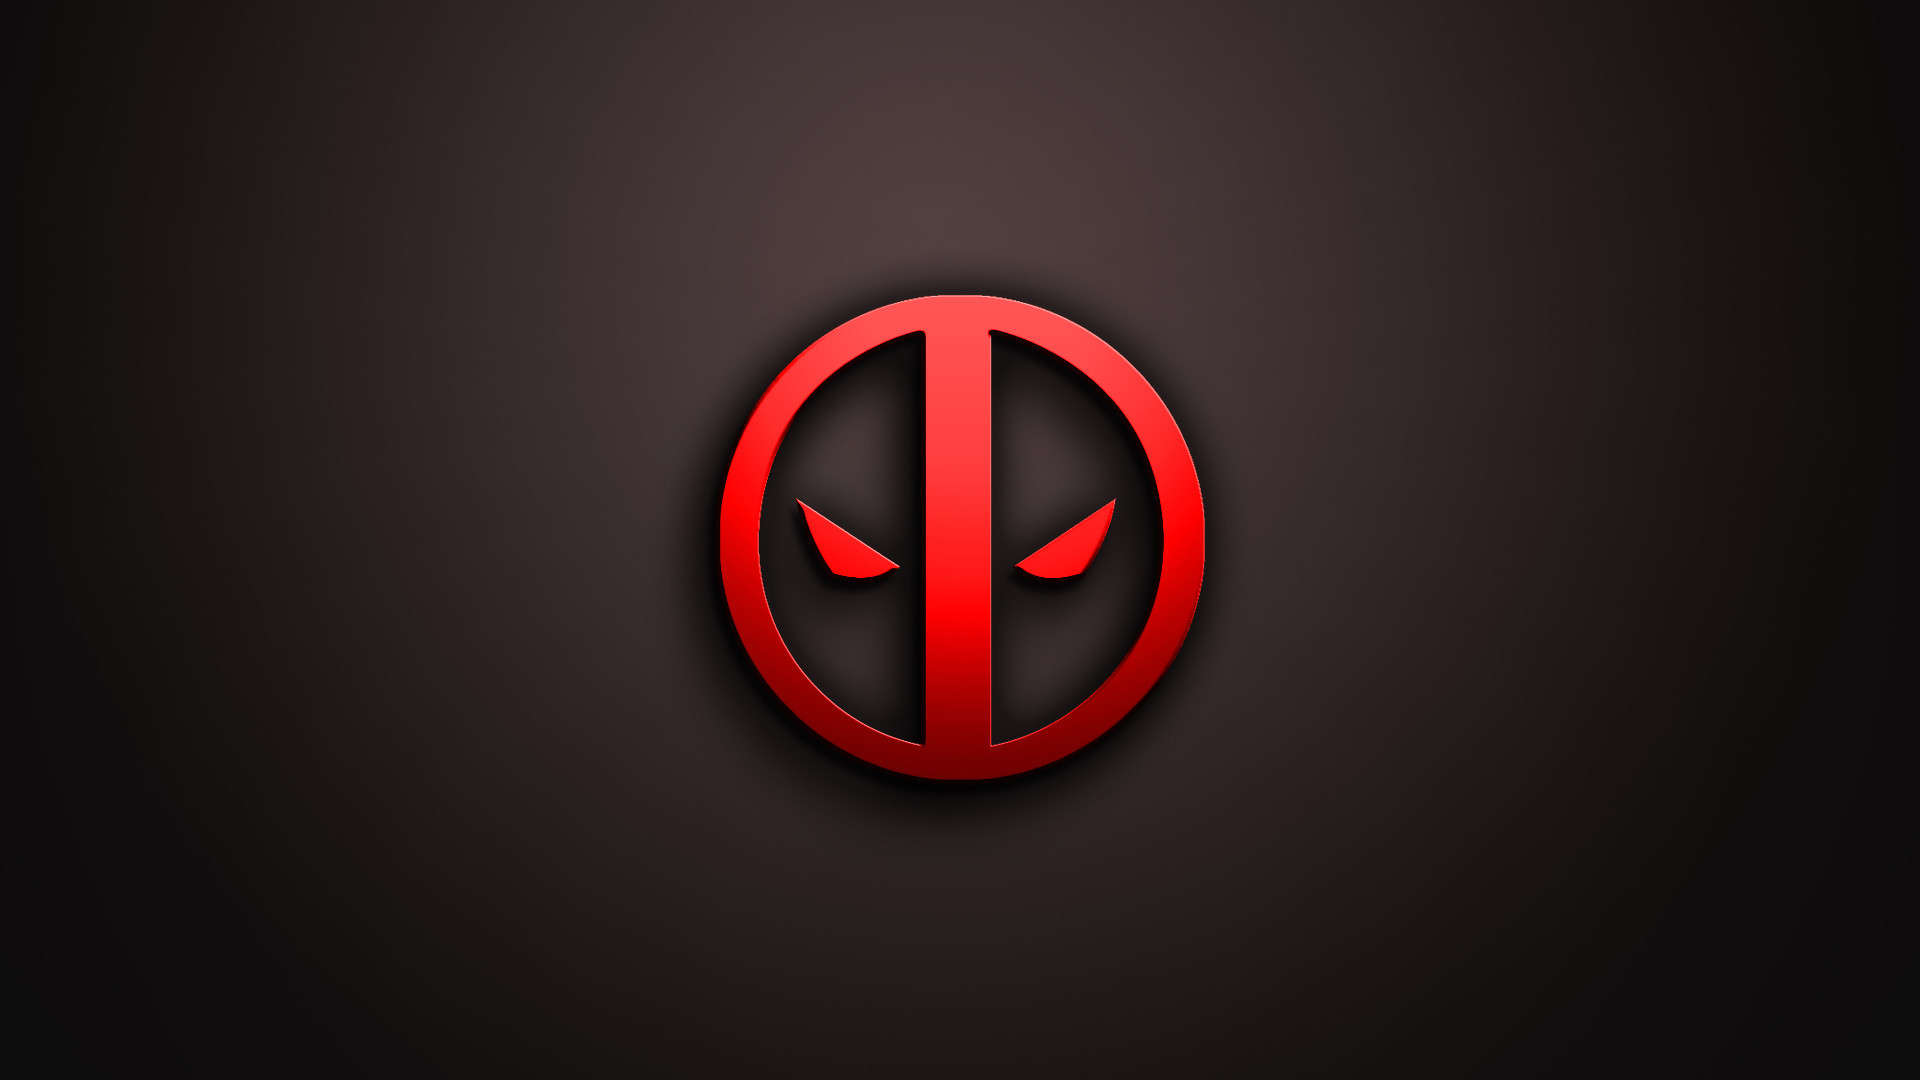 Res: 1920x1080, Deadpool Logo On Wallpapers Images.